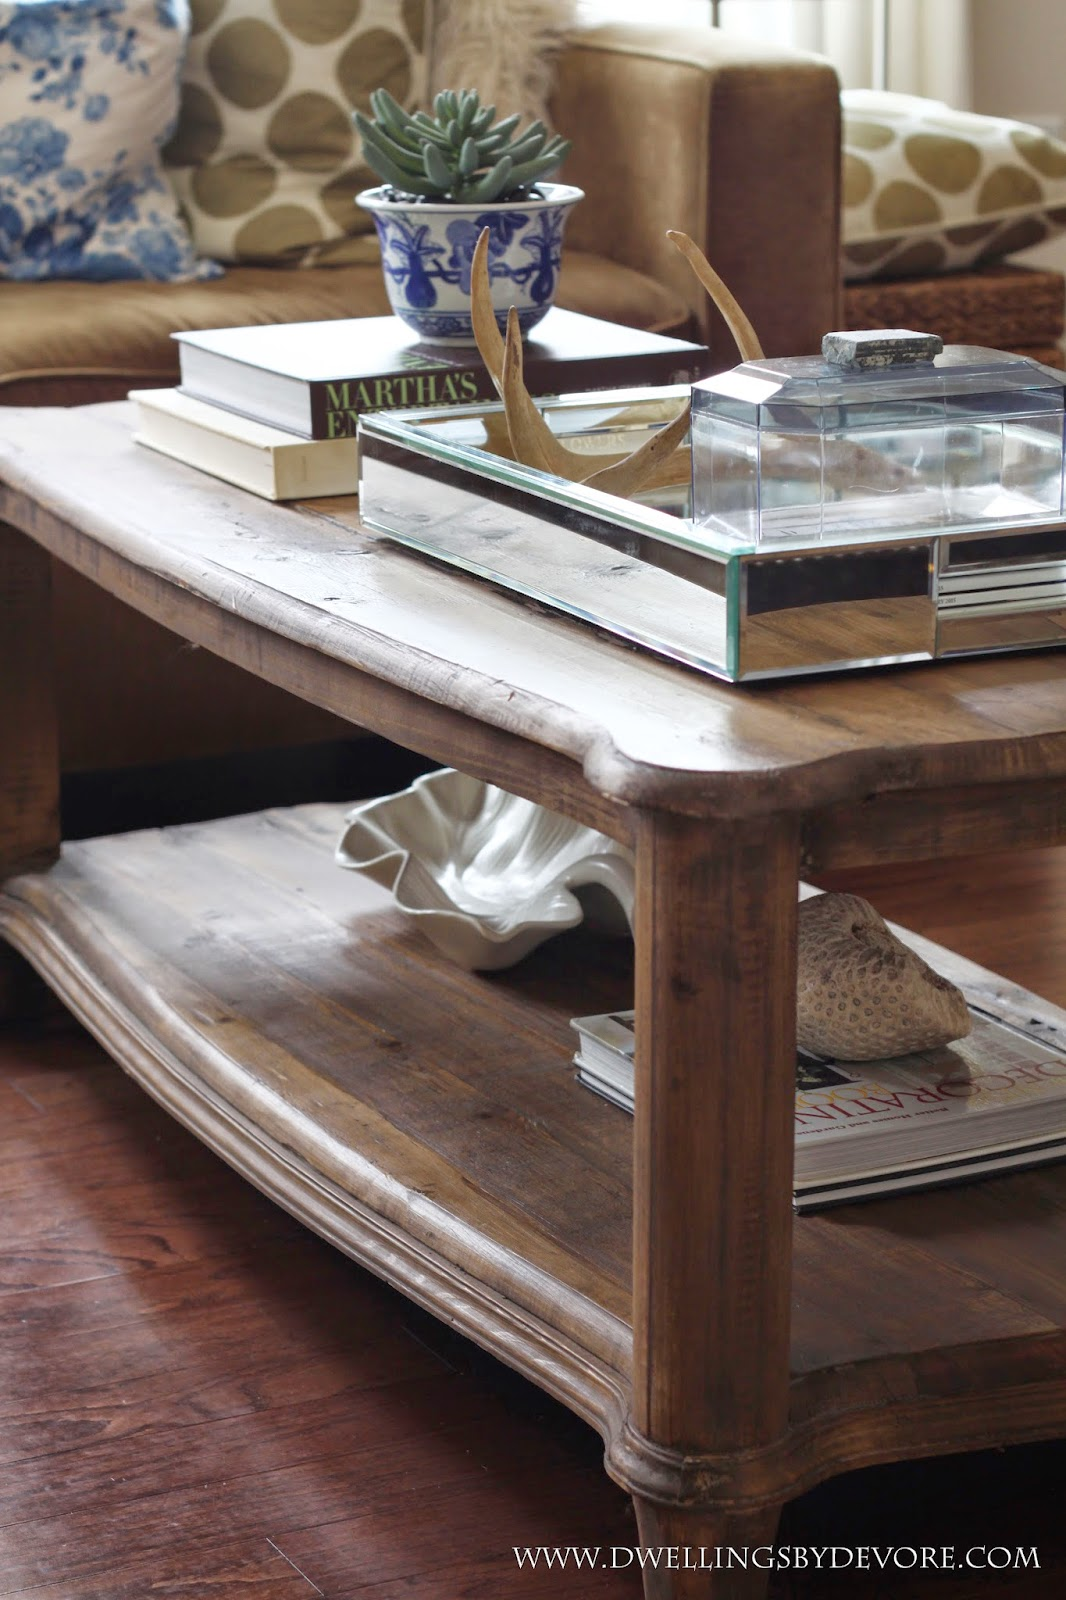 Dwellings By Devore Our New Coffee Table A Diy